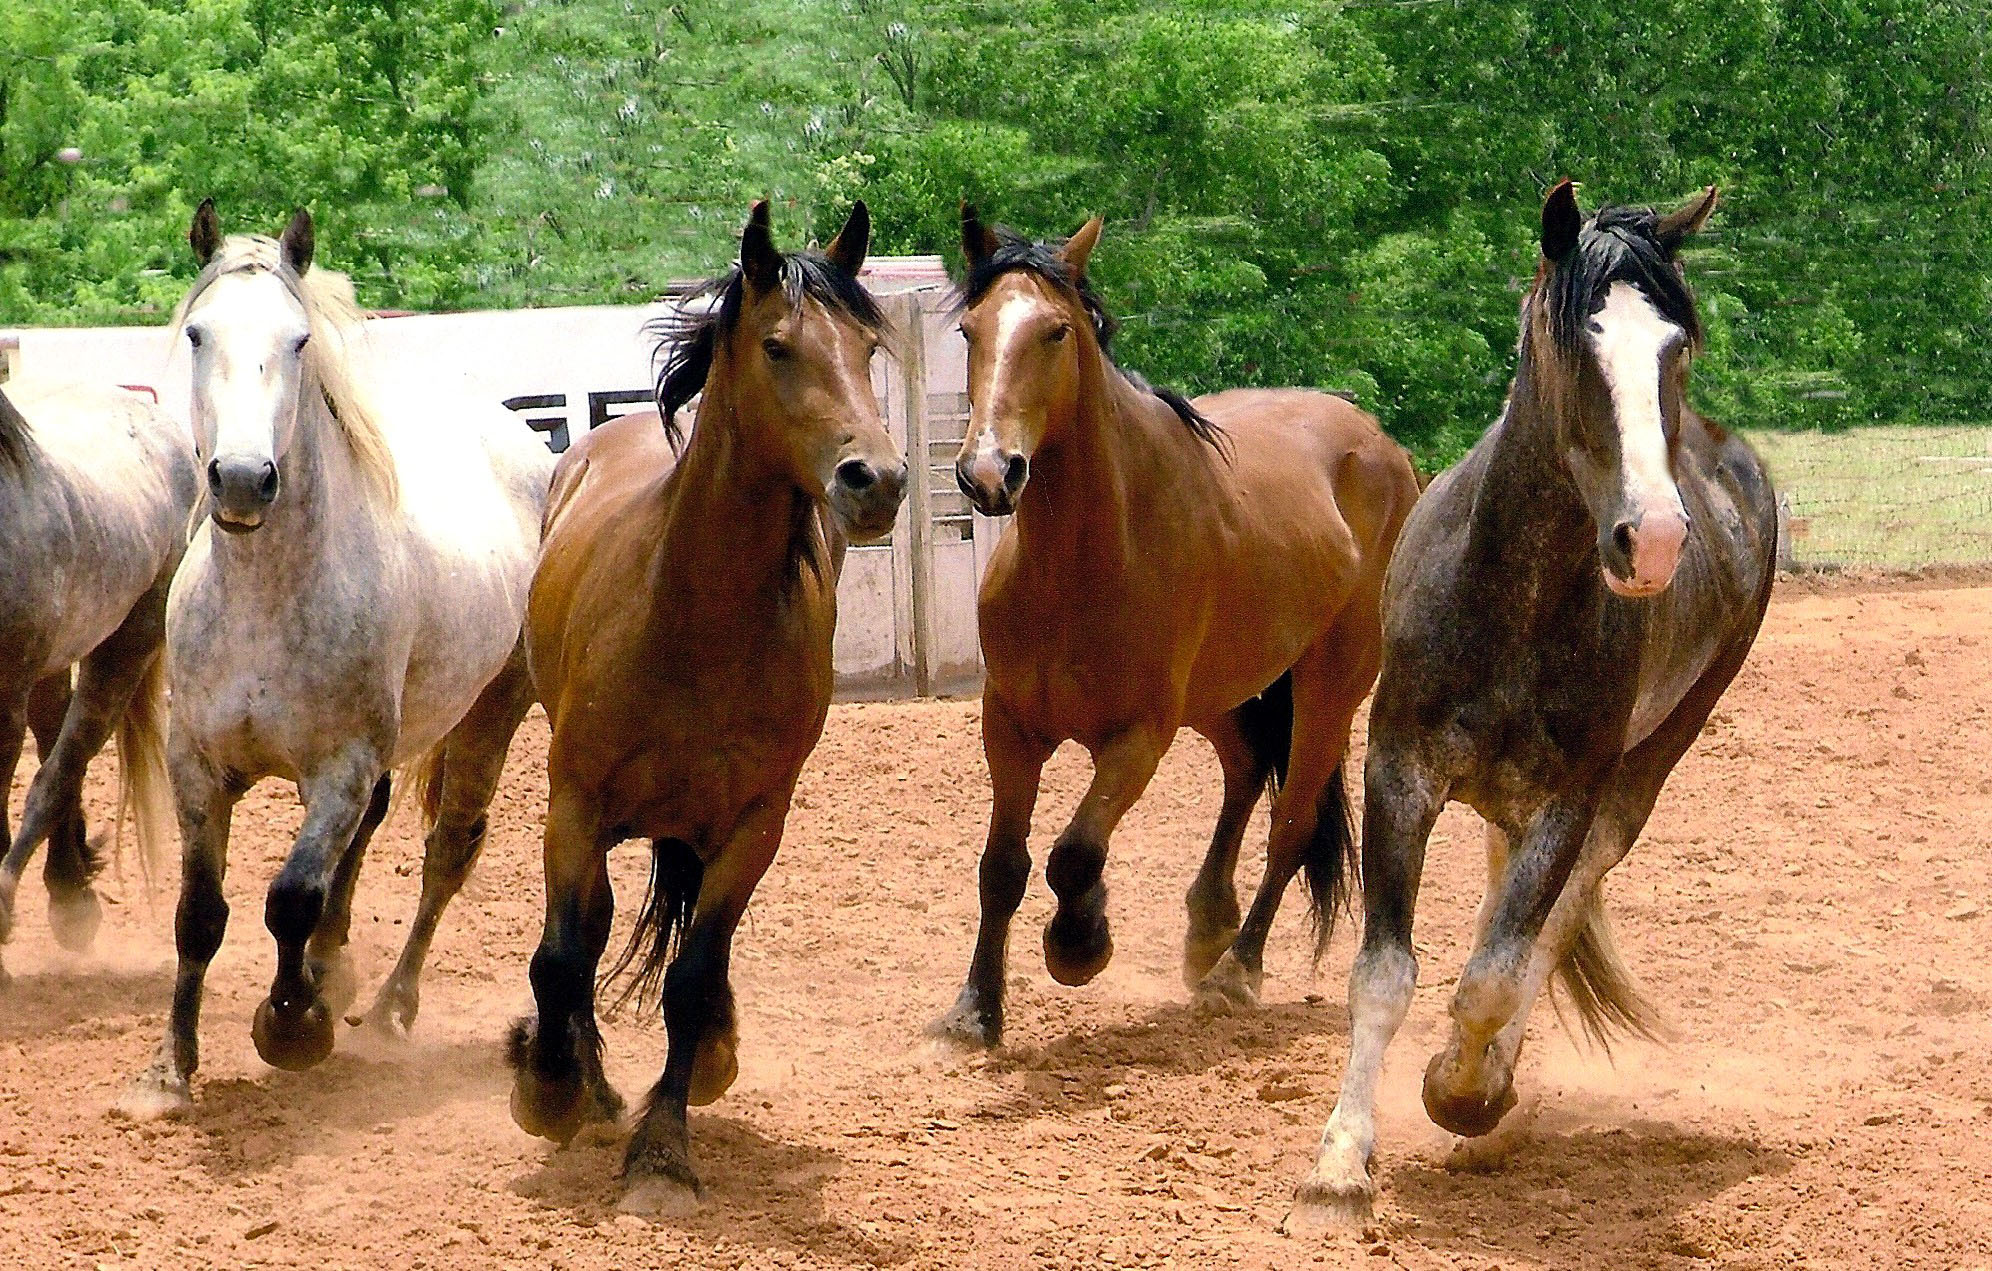 Running horses pictures - photo#16